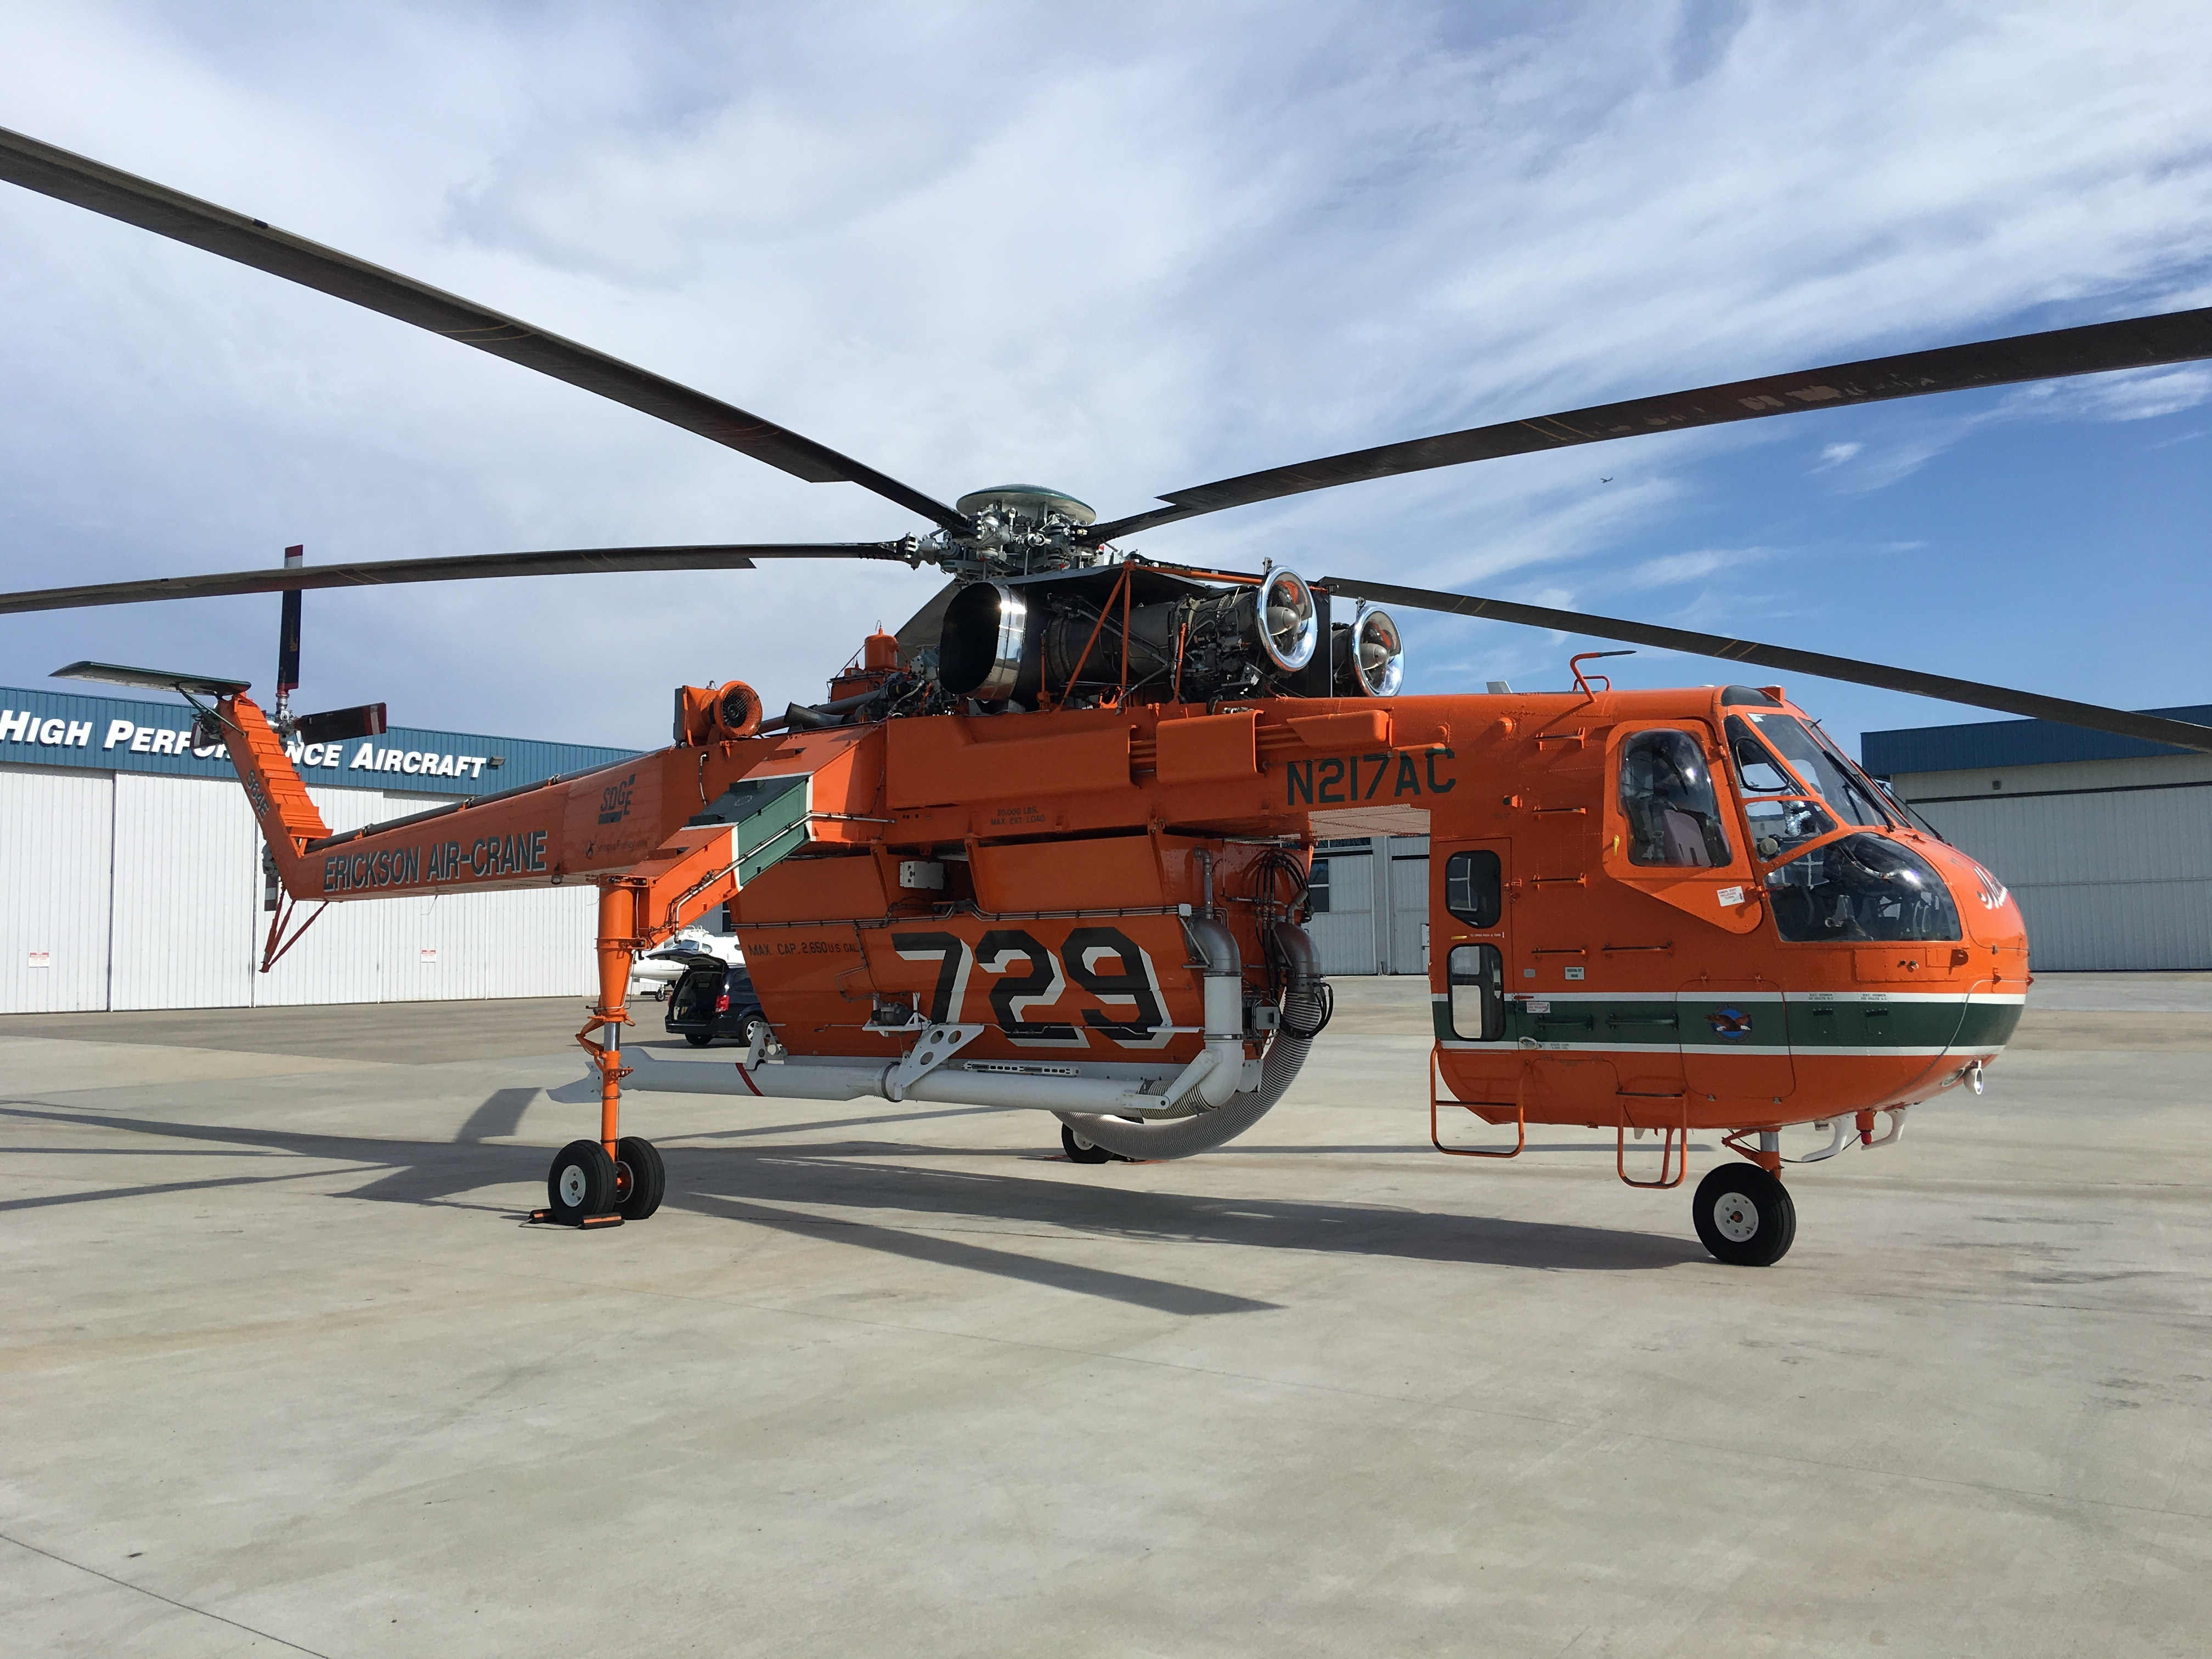 Video: SDG&E's Aircrane Facing Challenging Fire Season in San Diego